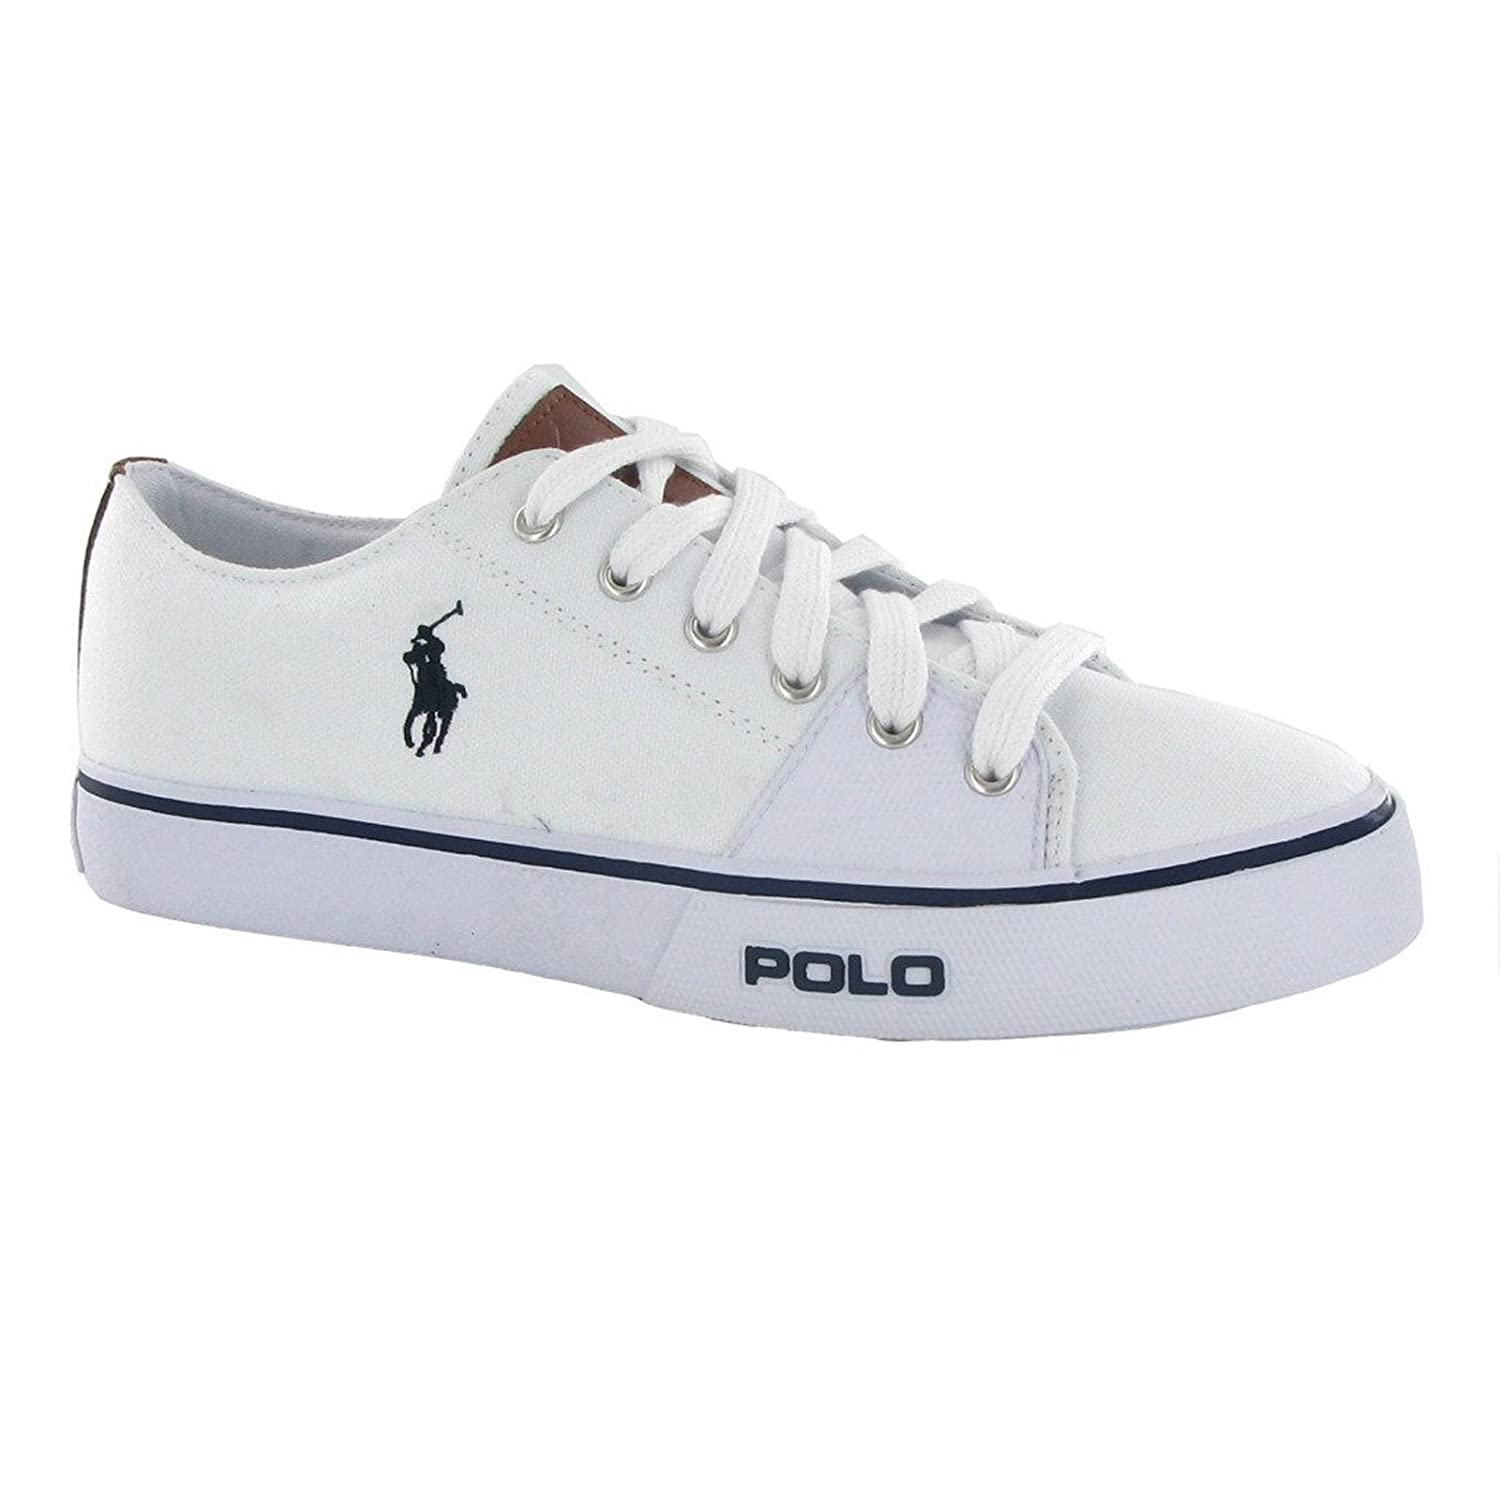 cheap polo ralph lauren shoes uk outlets electrical not working